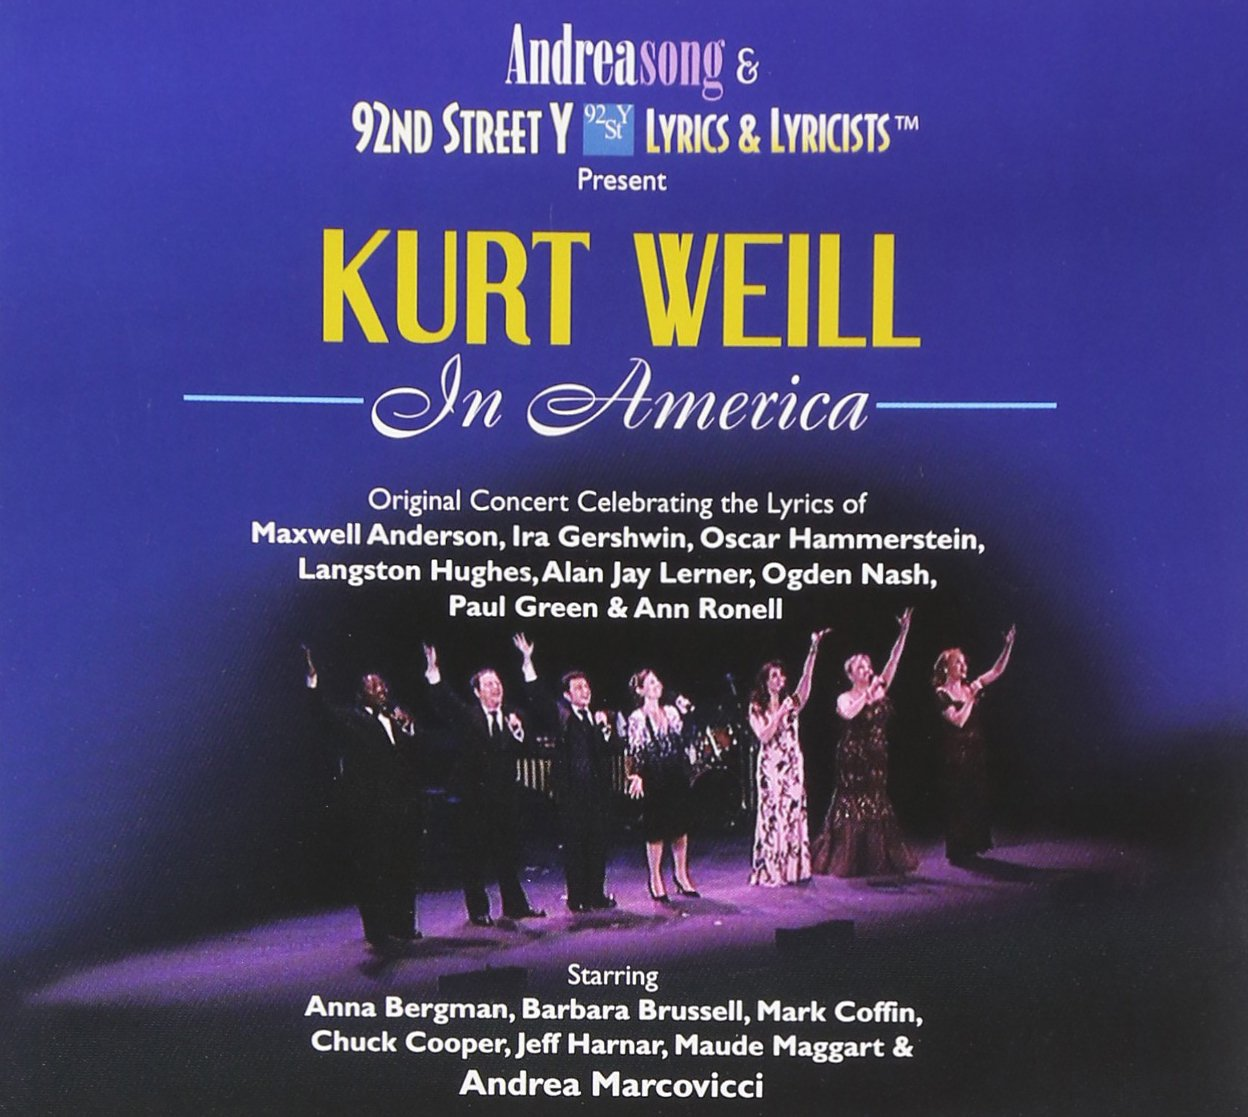 Kurt Weill In America by Andreasong